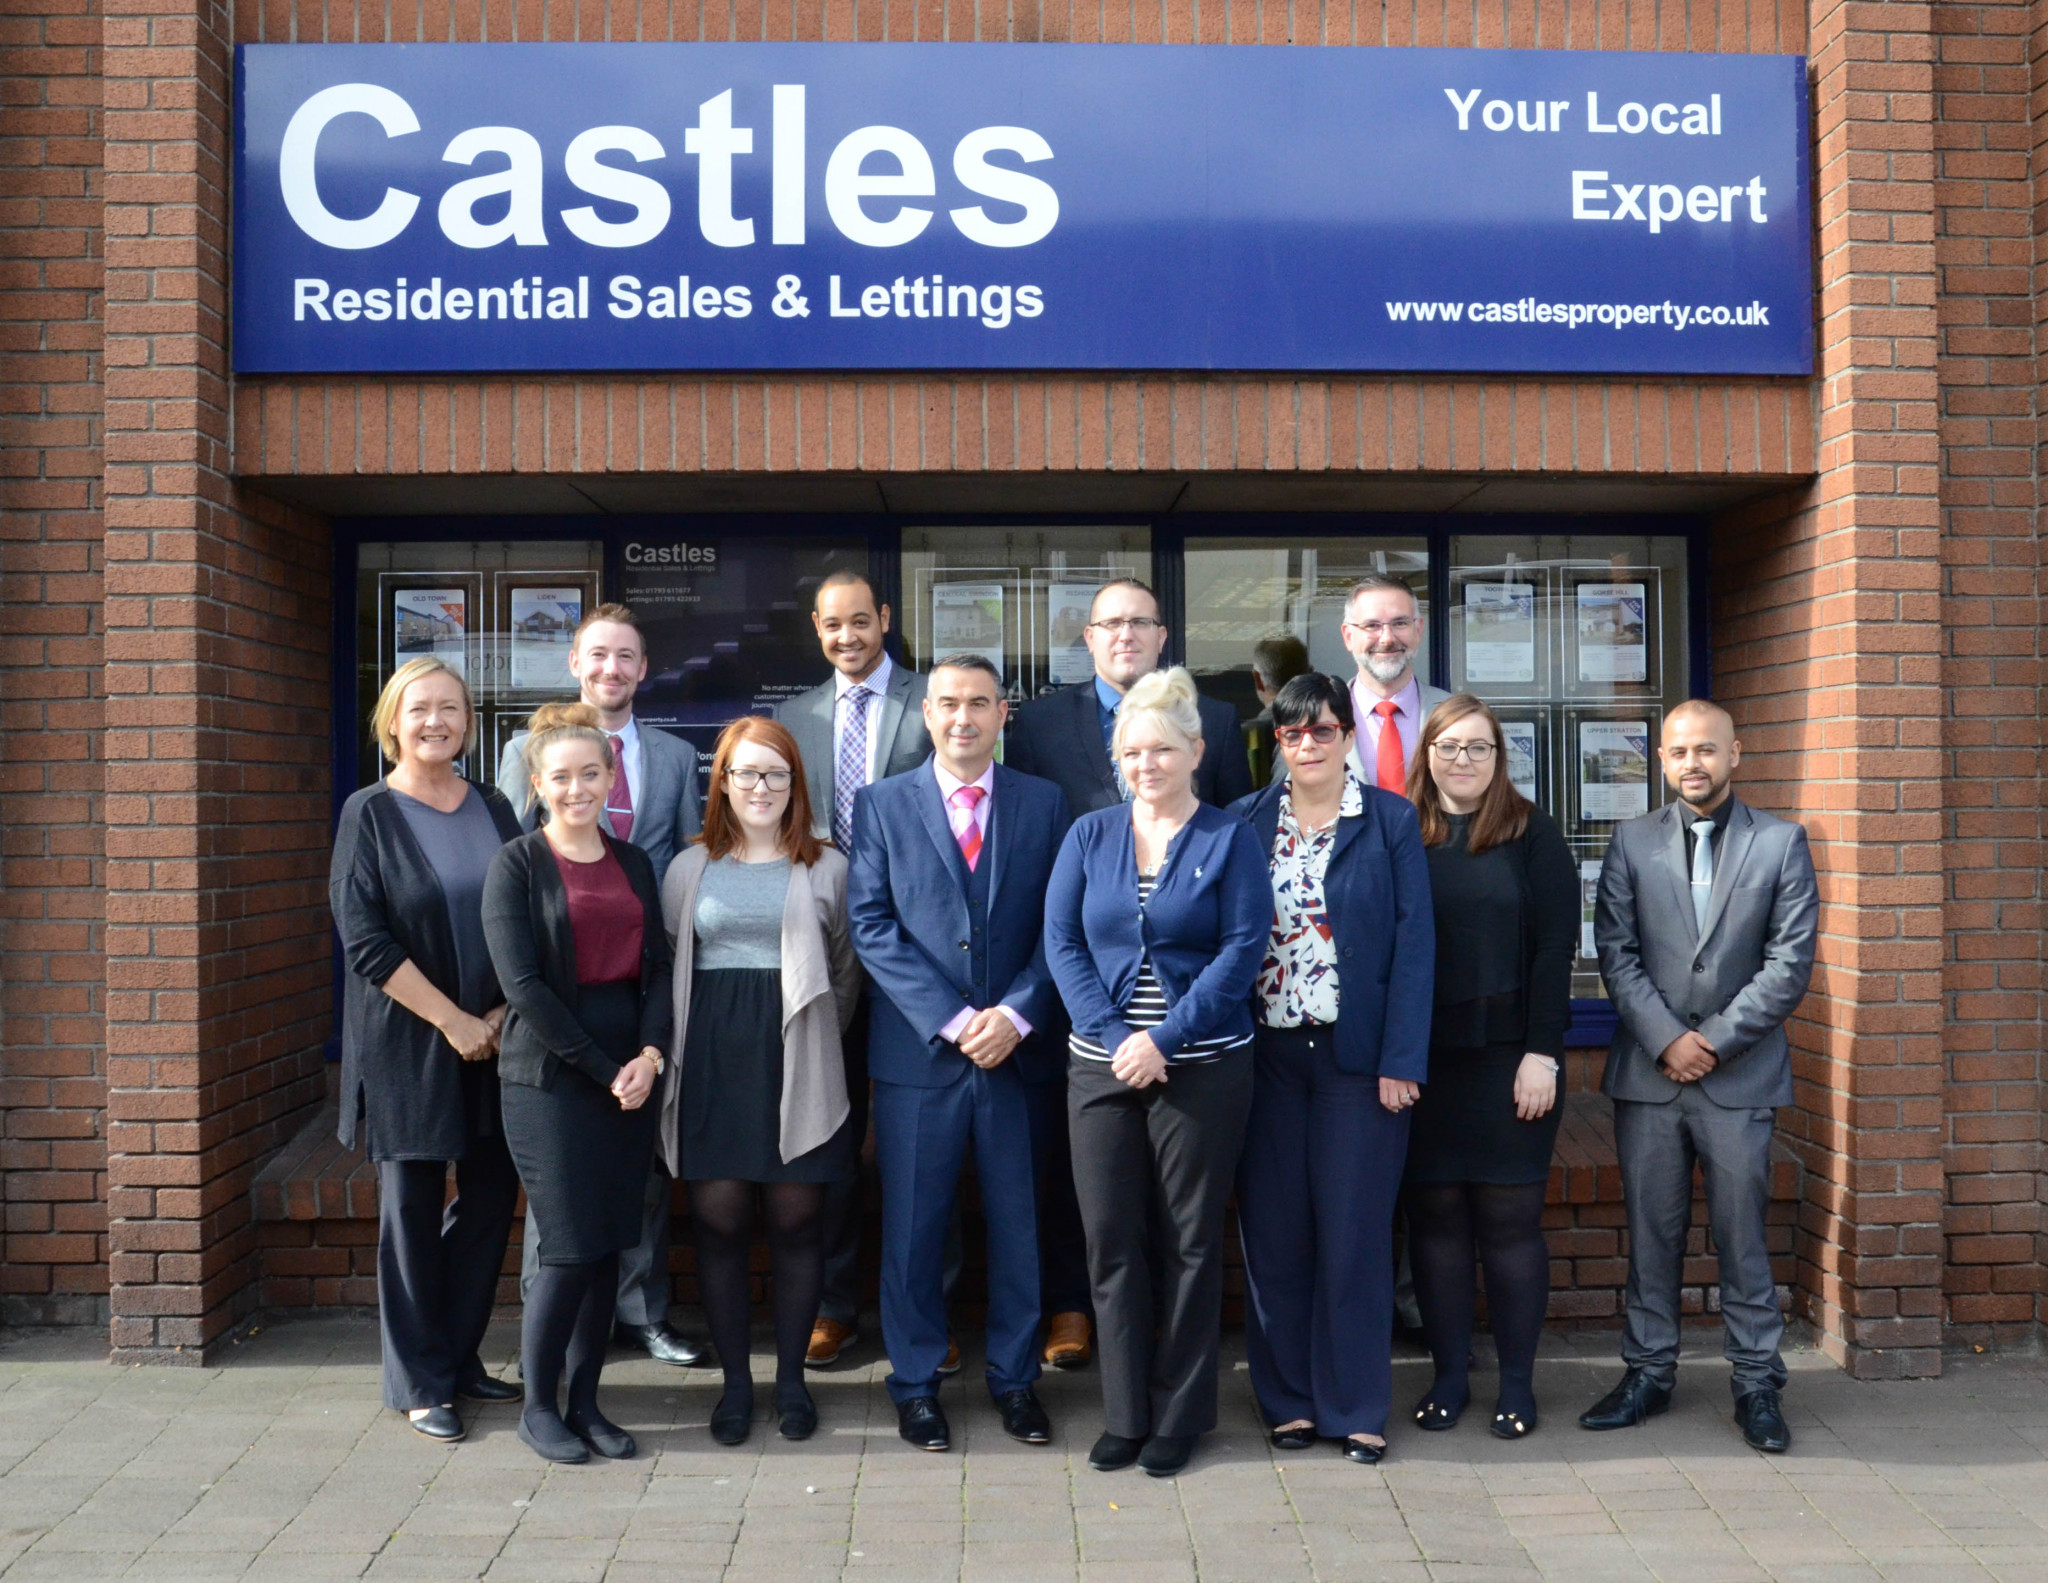 Swindon estate agents celebrate 15 years in business!